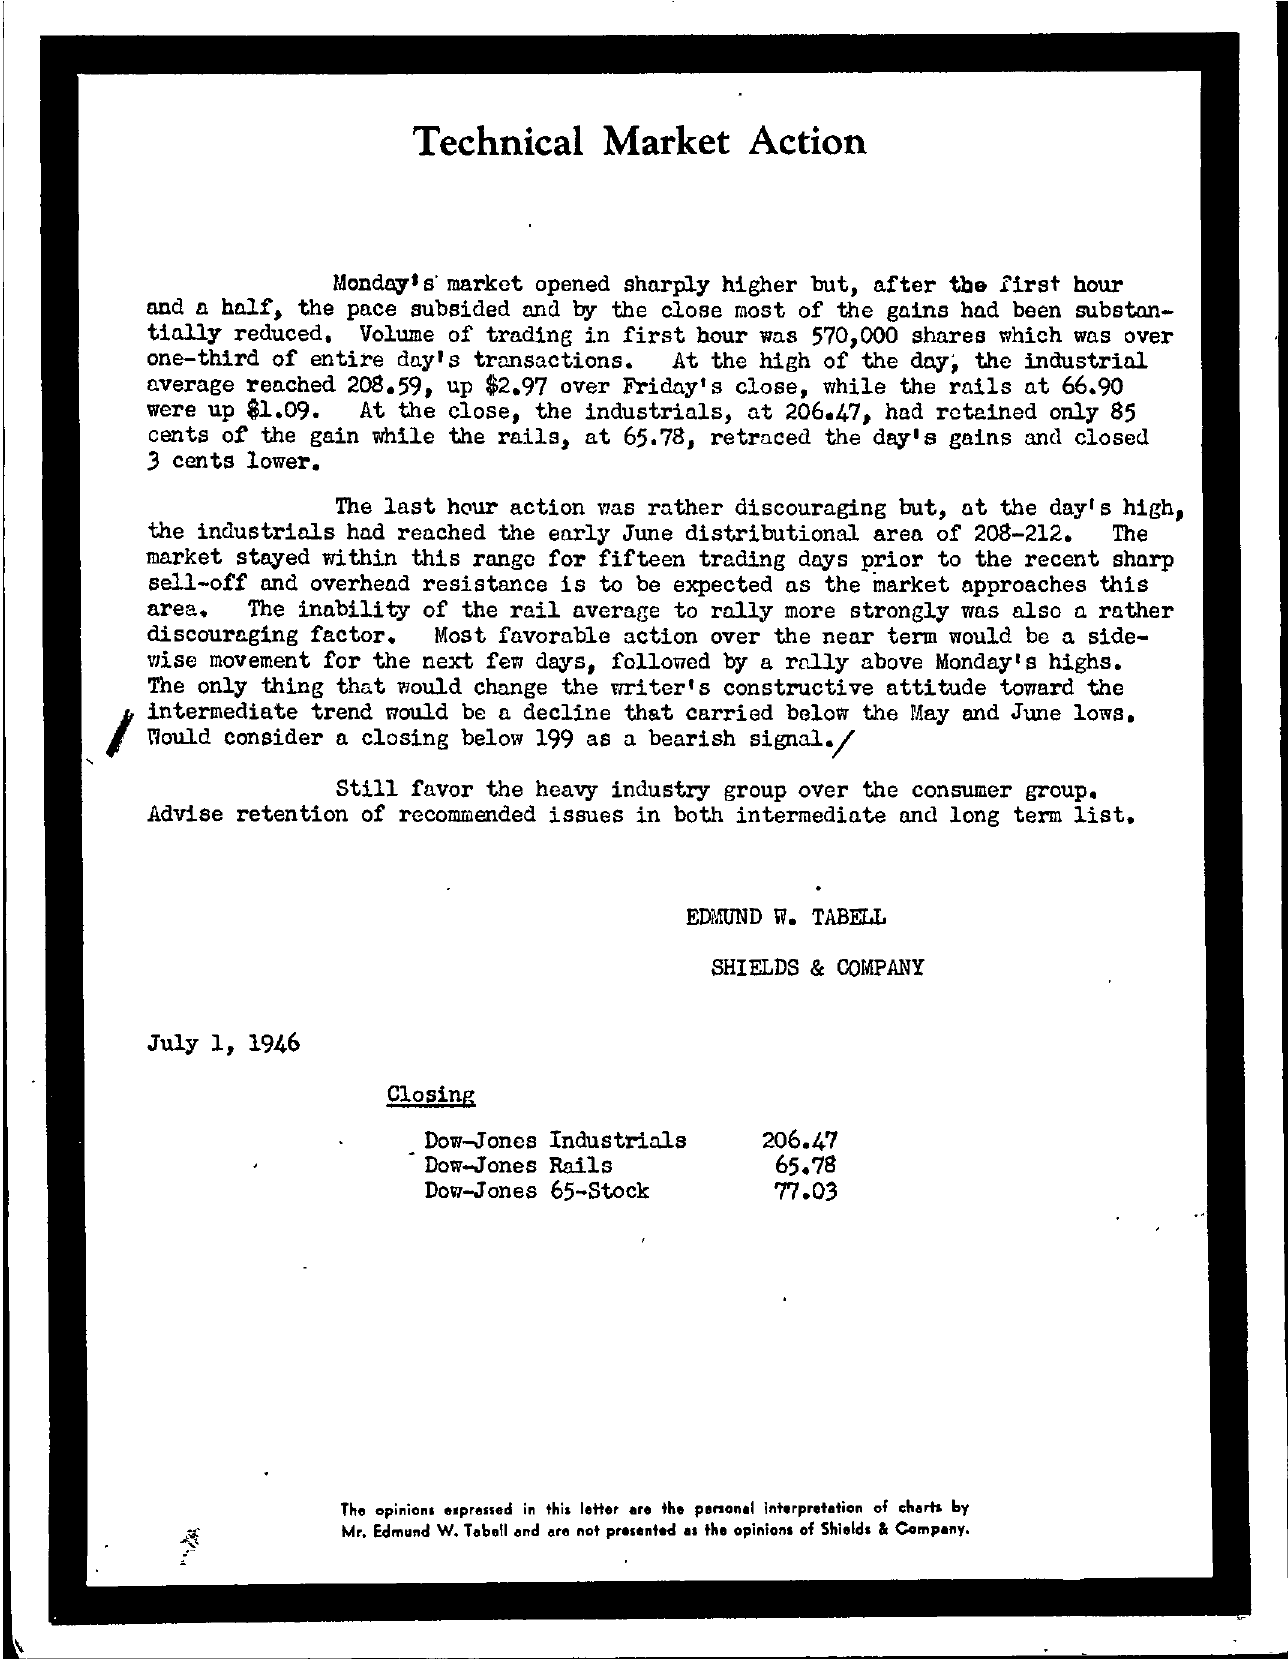 Tabell's Market Letter - July 01, 1946